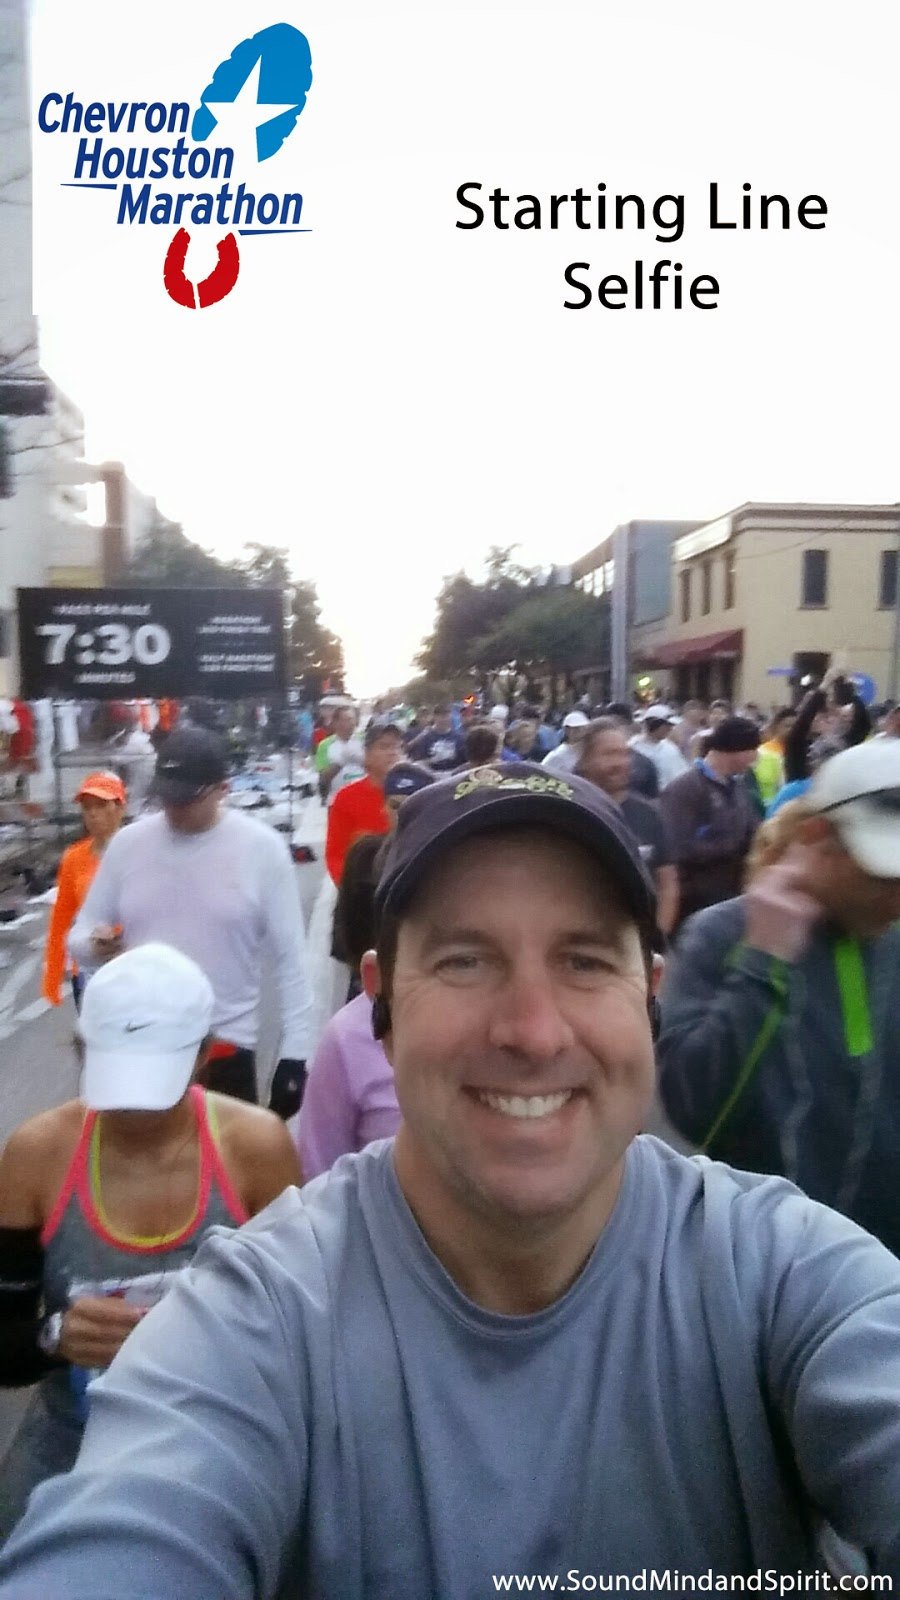 Starting Line Selfie  - A Chevron Houston Marathon Review